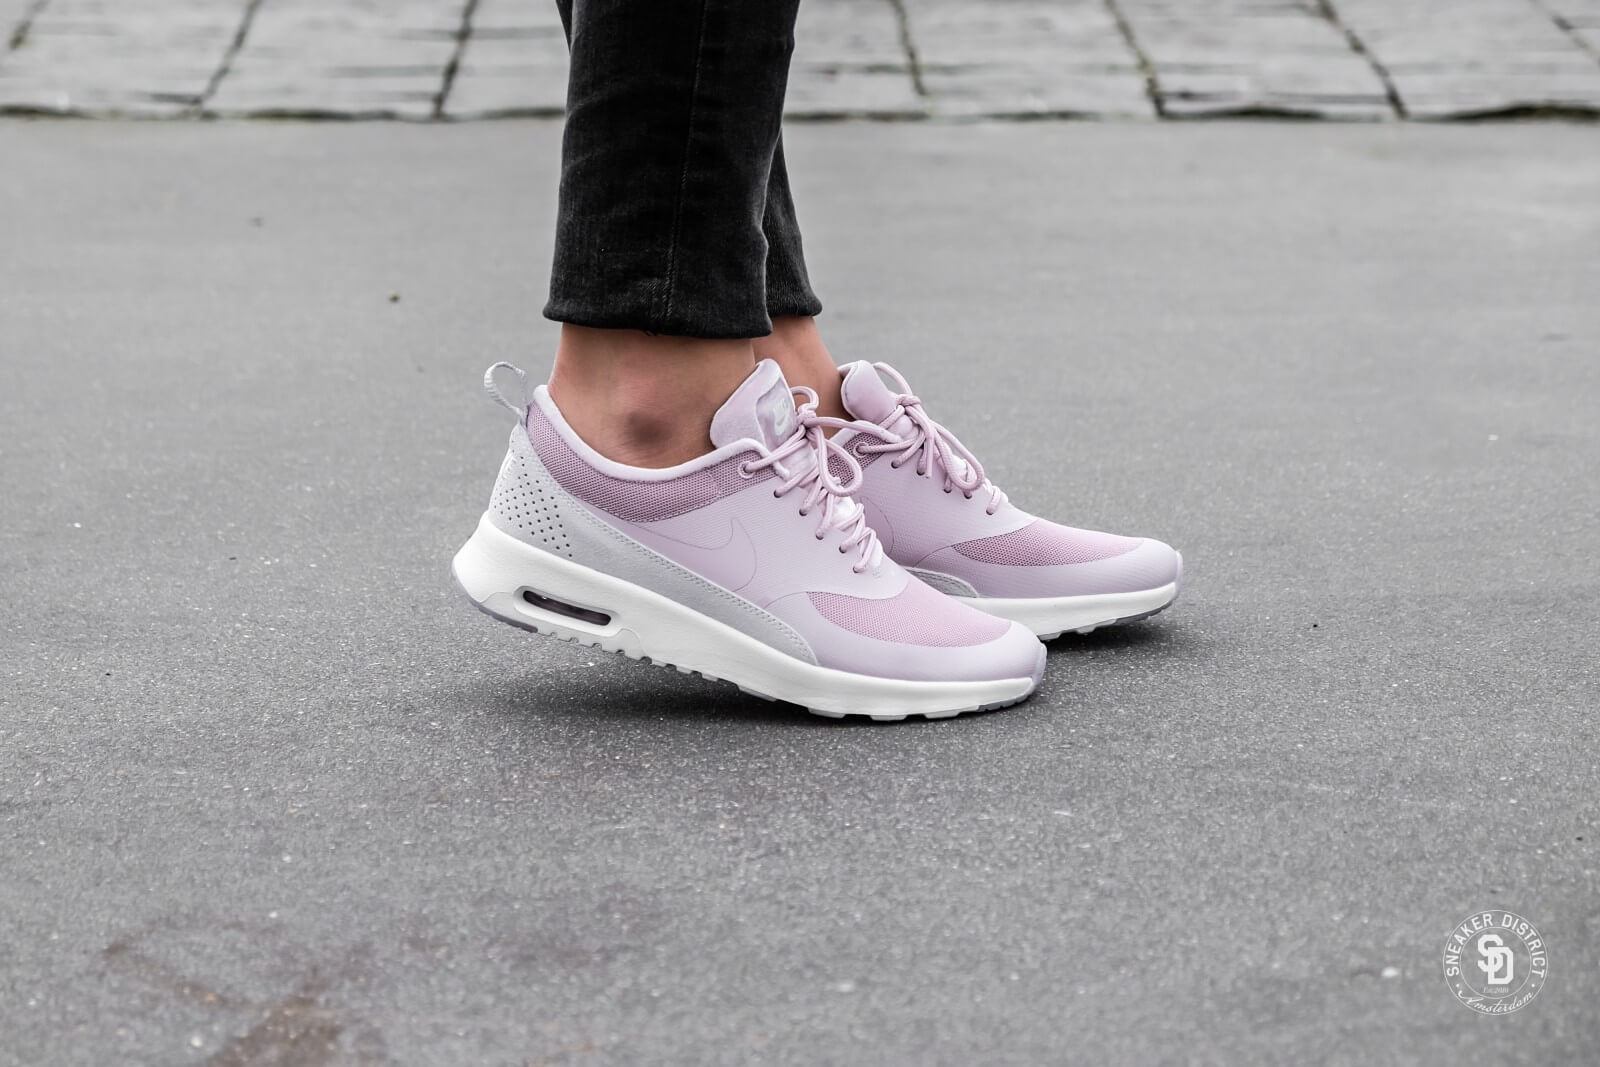 new zealand nike air max thea womens pink grey 9d0de 0da13